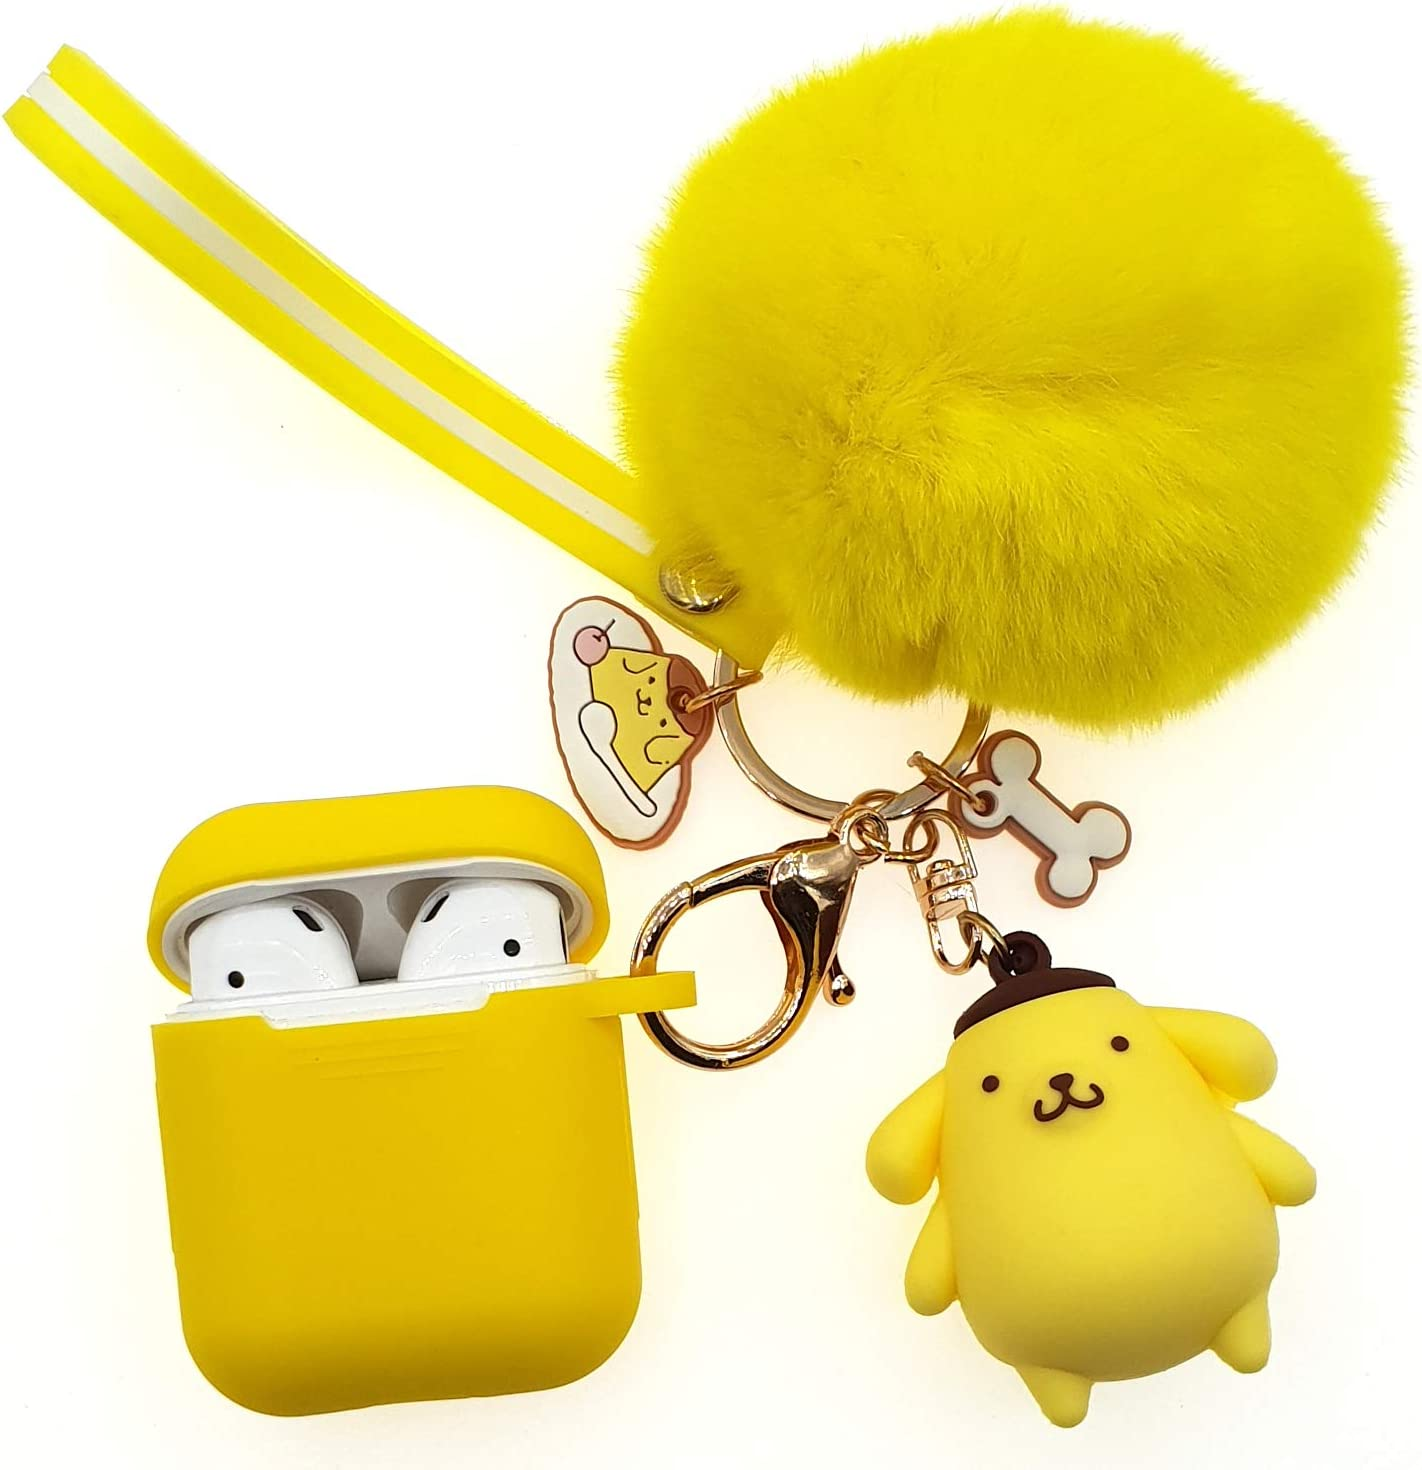 AirPods 2/1 Silicone Case, Adorable Replacement for Airpod Case Drop Proof (Silicone Skin and Cover for Apple Headphone Charging Case 2/1) with Fluffy Fur Ball Cute Cartoon Pets Keychains